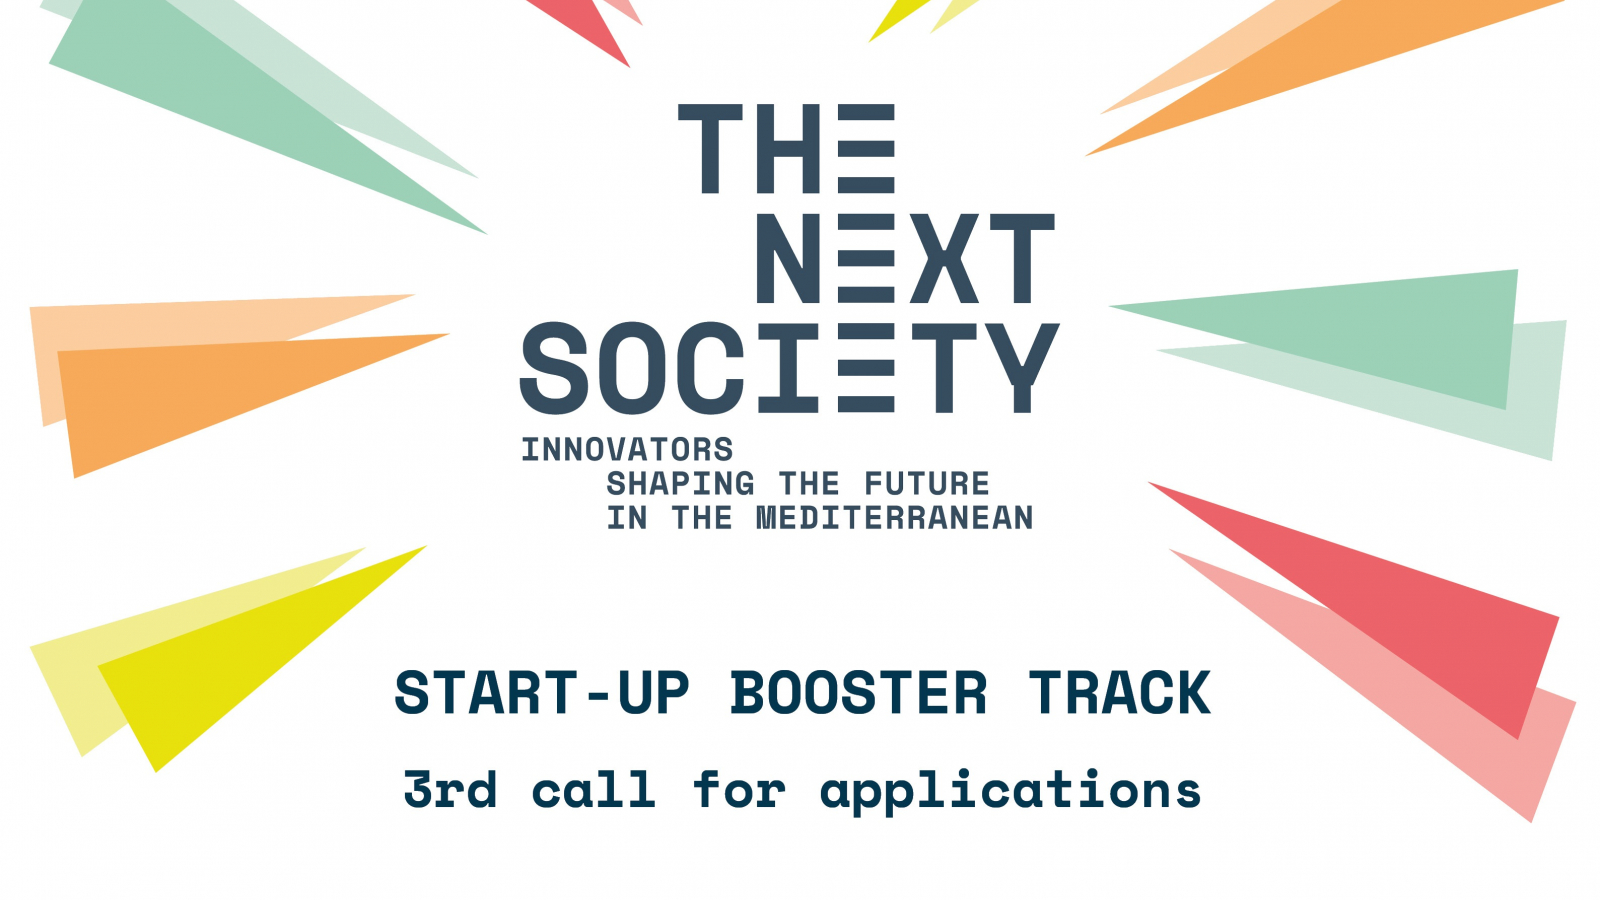 NEXT SOCIETY Start-up Booster Track 2019/2020 for Entrepreneurs in the MENA region